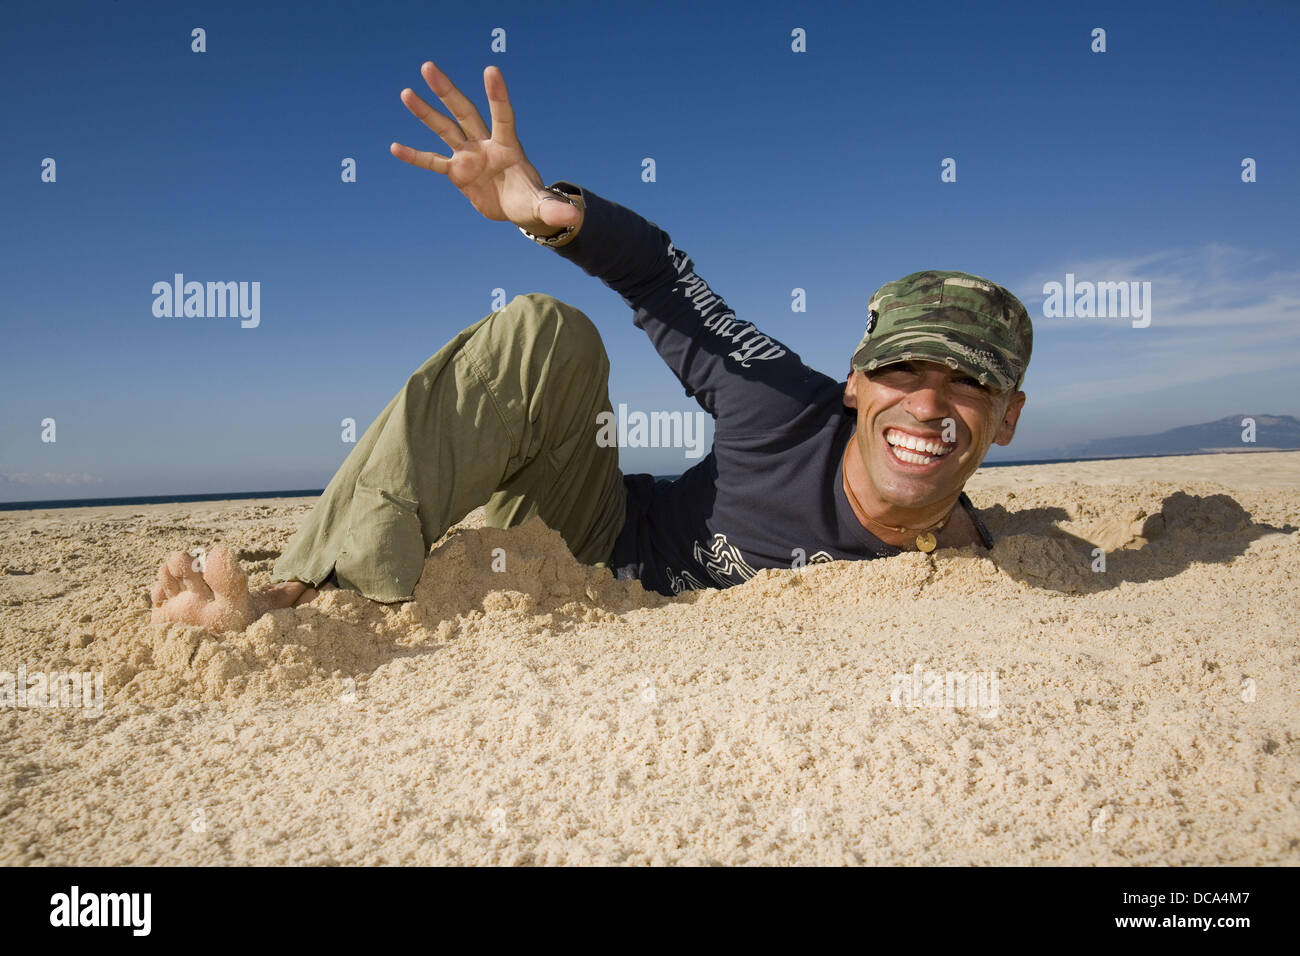 Man Coming Out of a Ditch Stock Photo